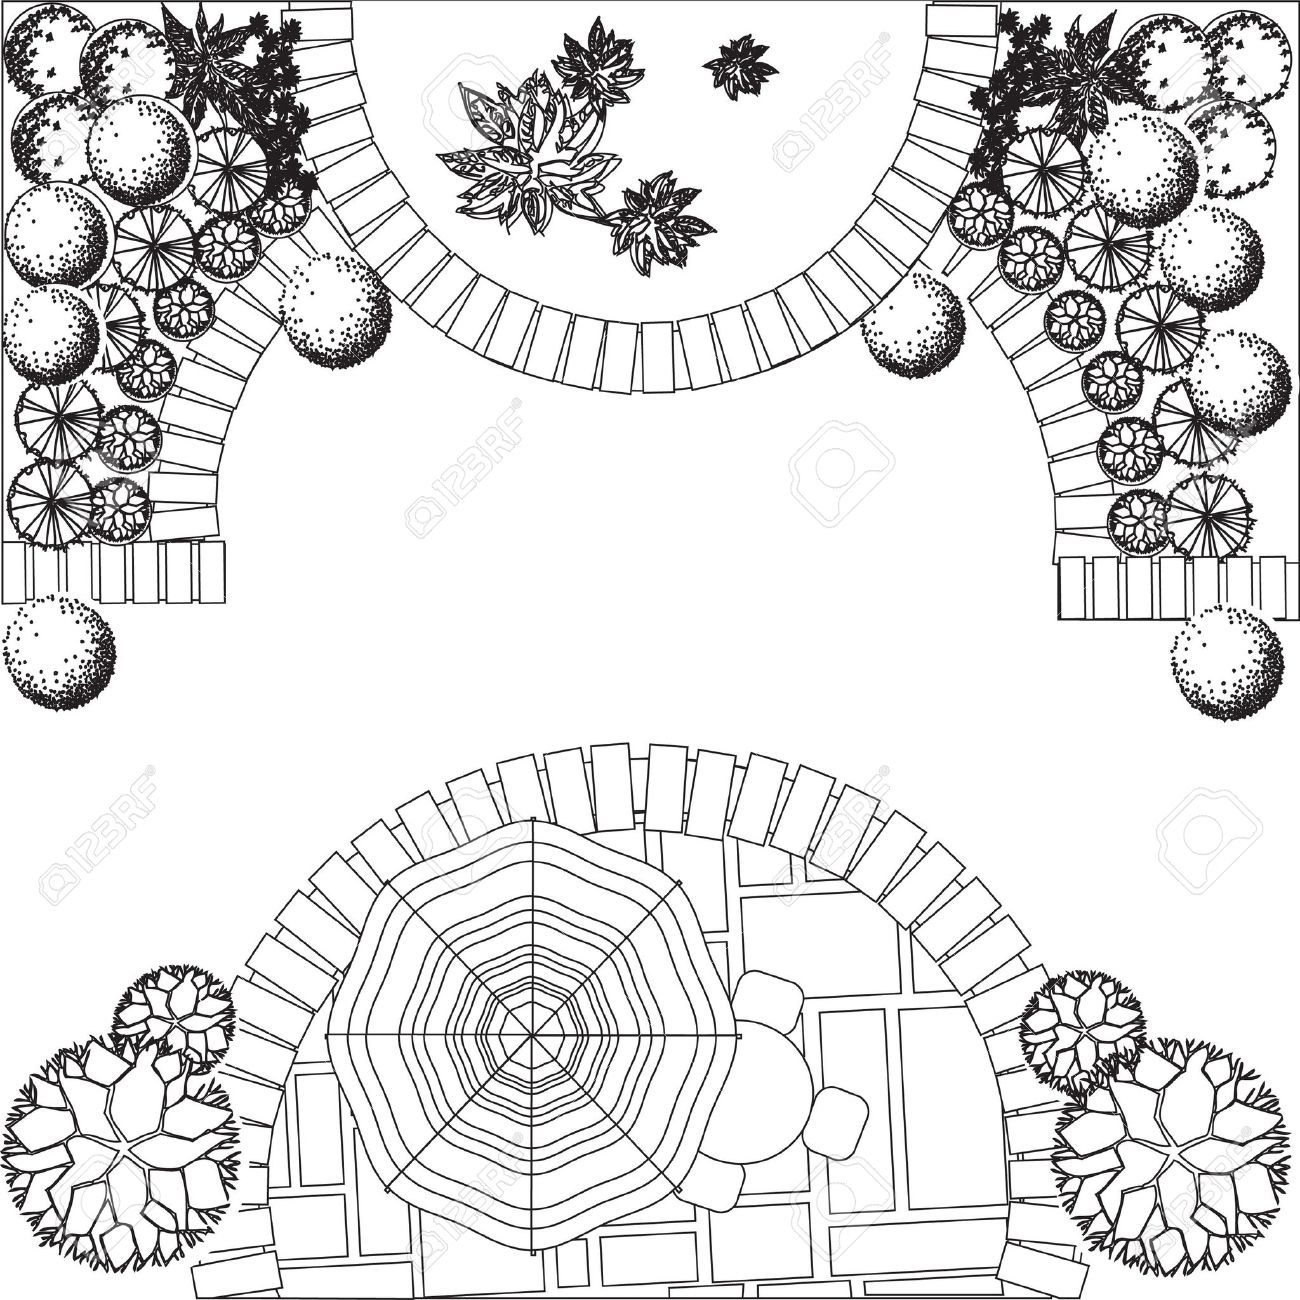 Plan Of Garden With Plant Symbols Stock Vector